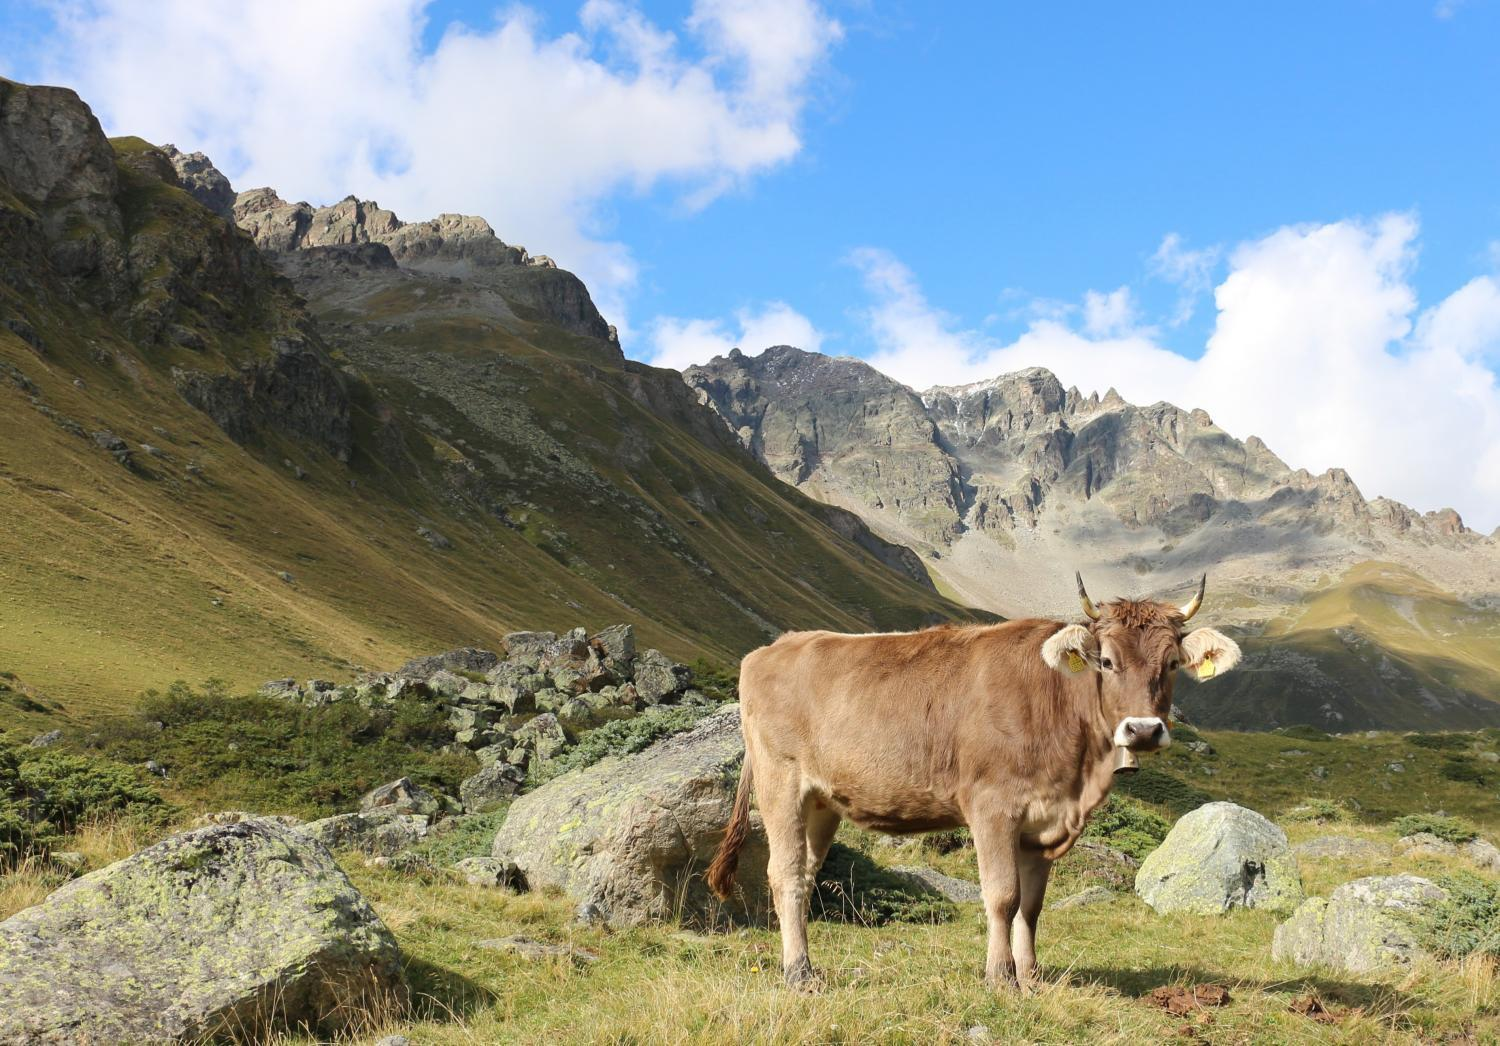 A cow in the Italian Alps